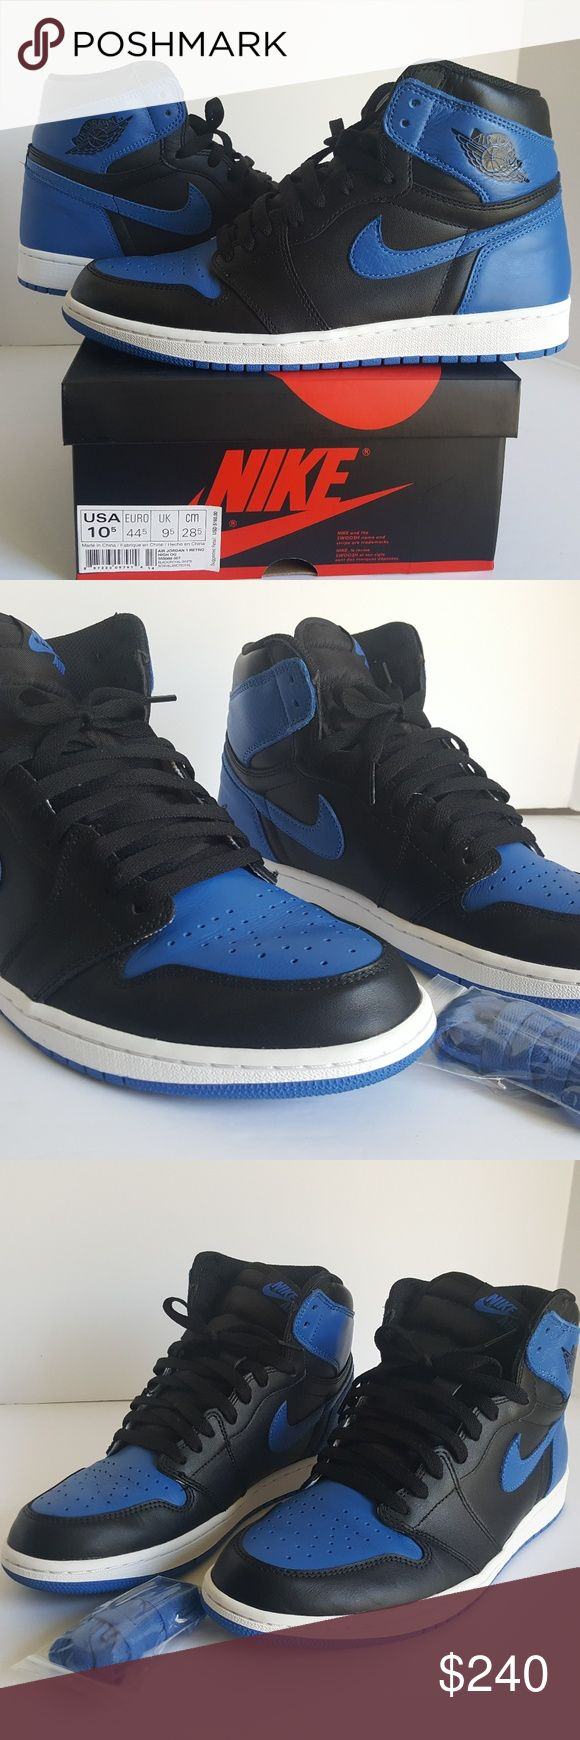 Air Jordan Retro 1 Royal (sz 10.5) 9.5/10 cond All Original (both laces included) Worn Twice  (No Damage)  Hard to Find Item Air Jordan Shoes Athletic Shoes